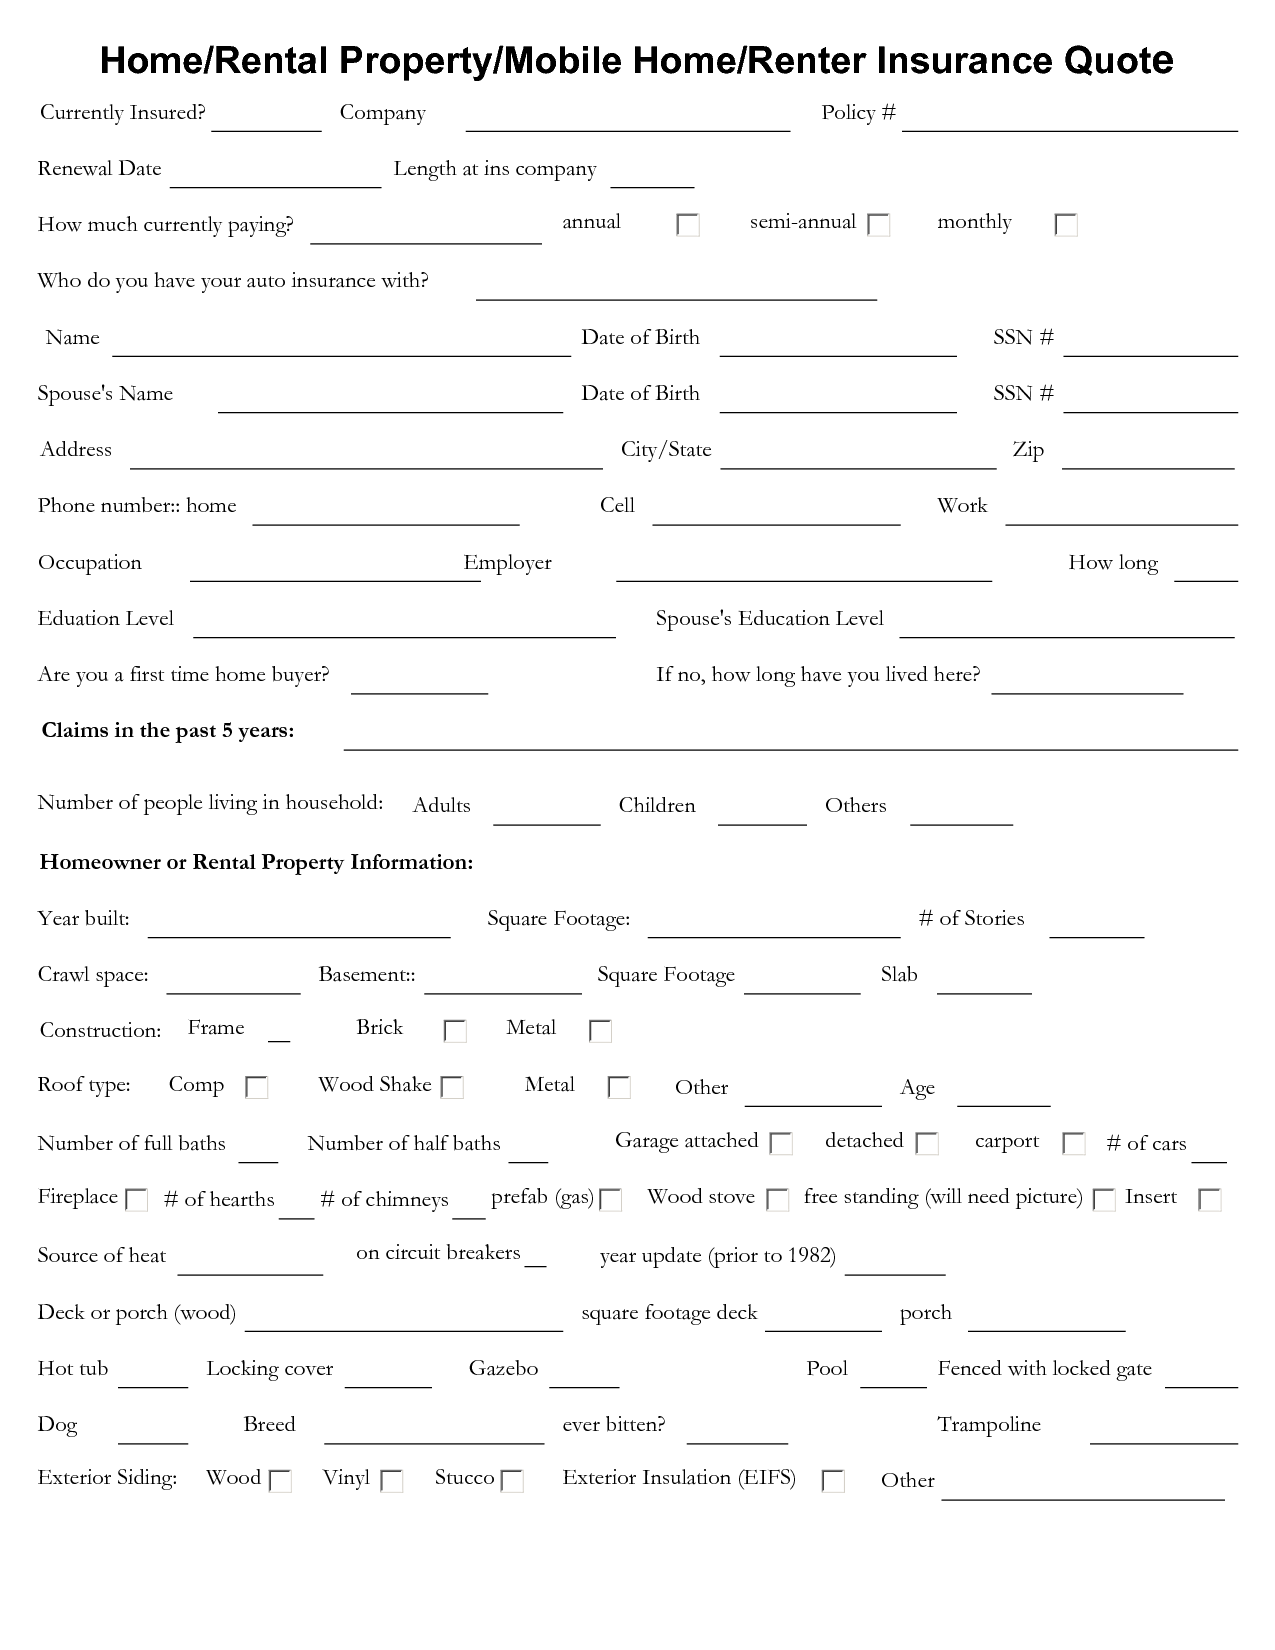 home insurance quote sheet template_4